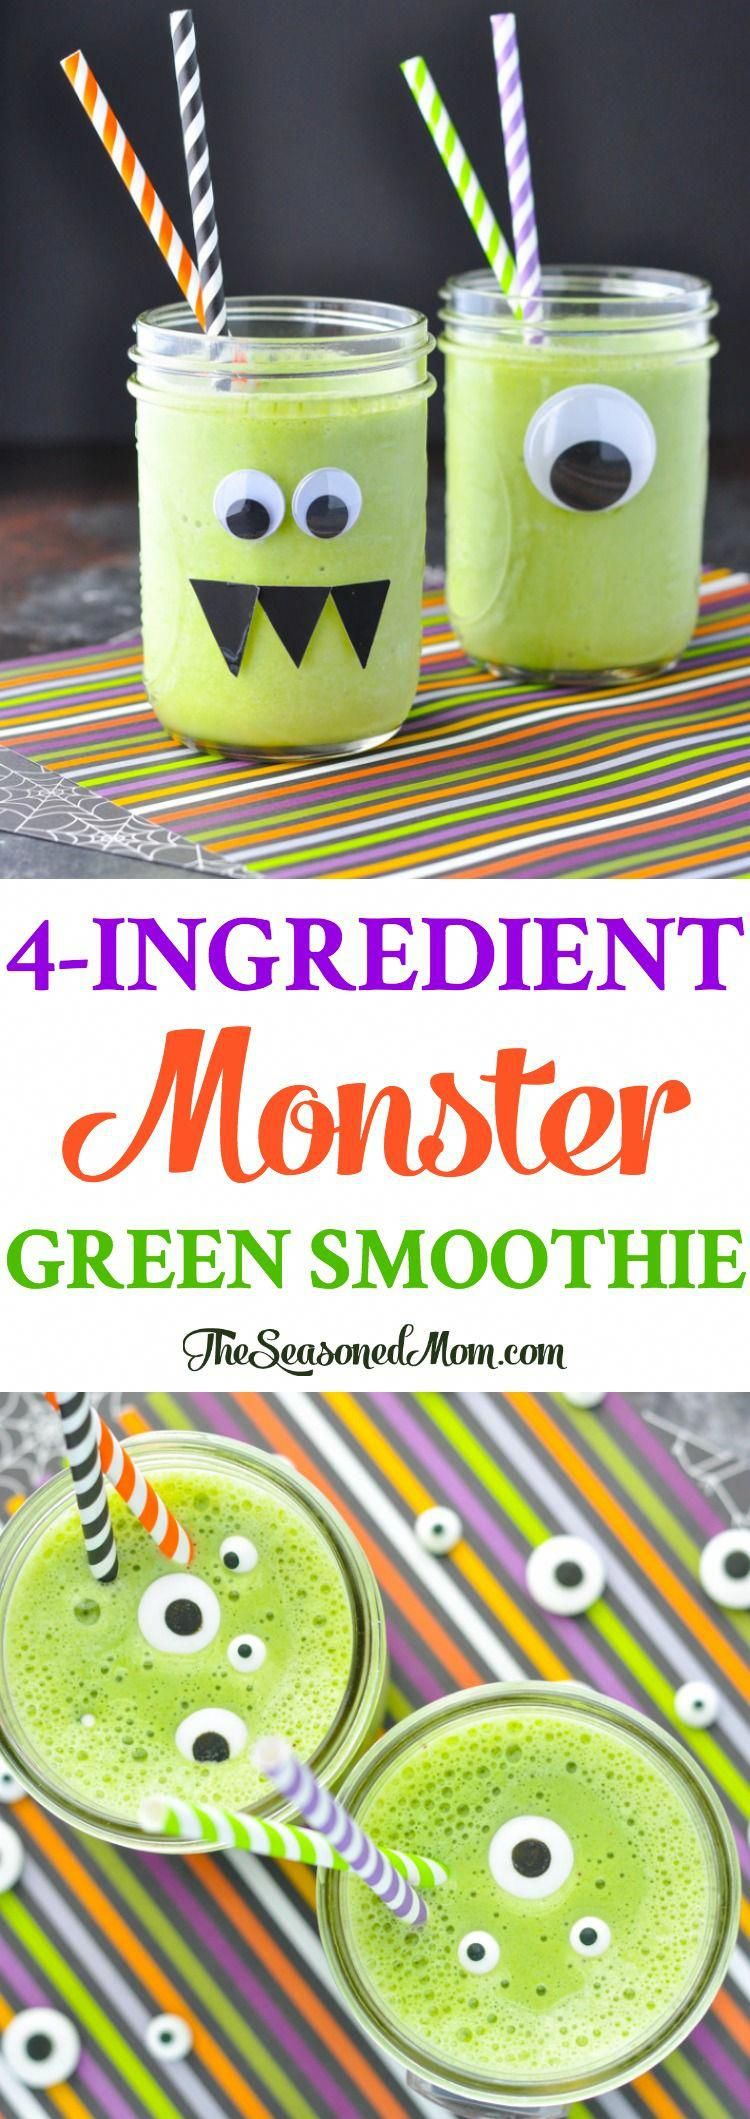 A 4-Ingredient Monster Green Smoothie is a healthy breakfast for Halloween morning! Healthy Recipes | Smoothie Recipes | Halloween Food | Halloween Party #healthybreakfastsmoothies Banana Smoothie Bowl, Smoothie Bowl Vegan, Green Breakfast Smoothie, Detox Breakfast, Healthy Breakfast Smoothies, Healthy Green Smoothies, Smoothies For Kids, Green Smoothie Recipes, Easy Smoothies